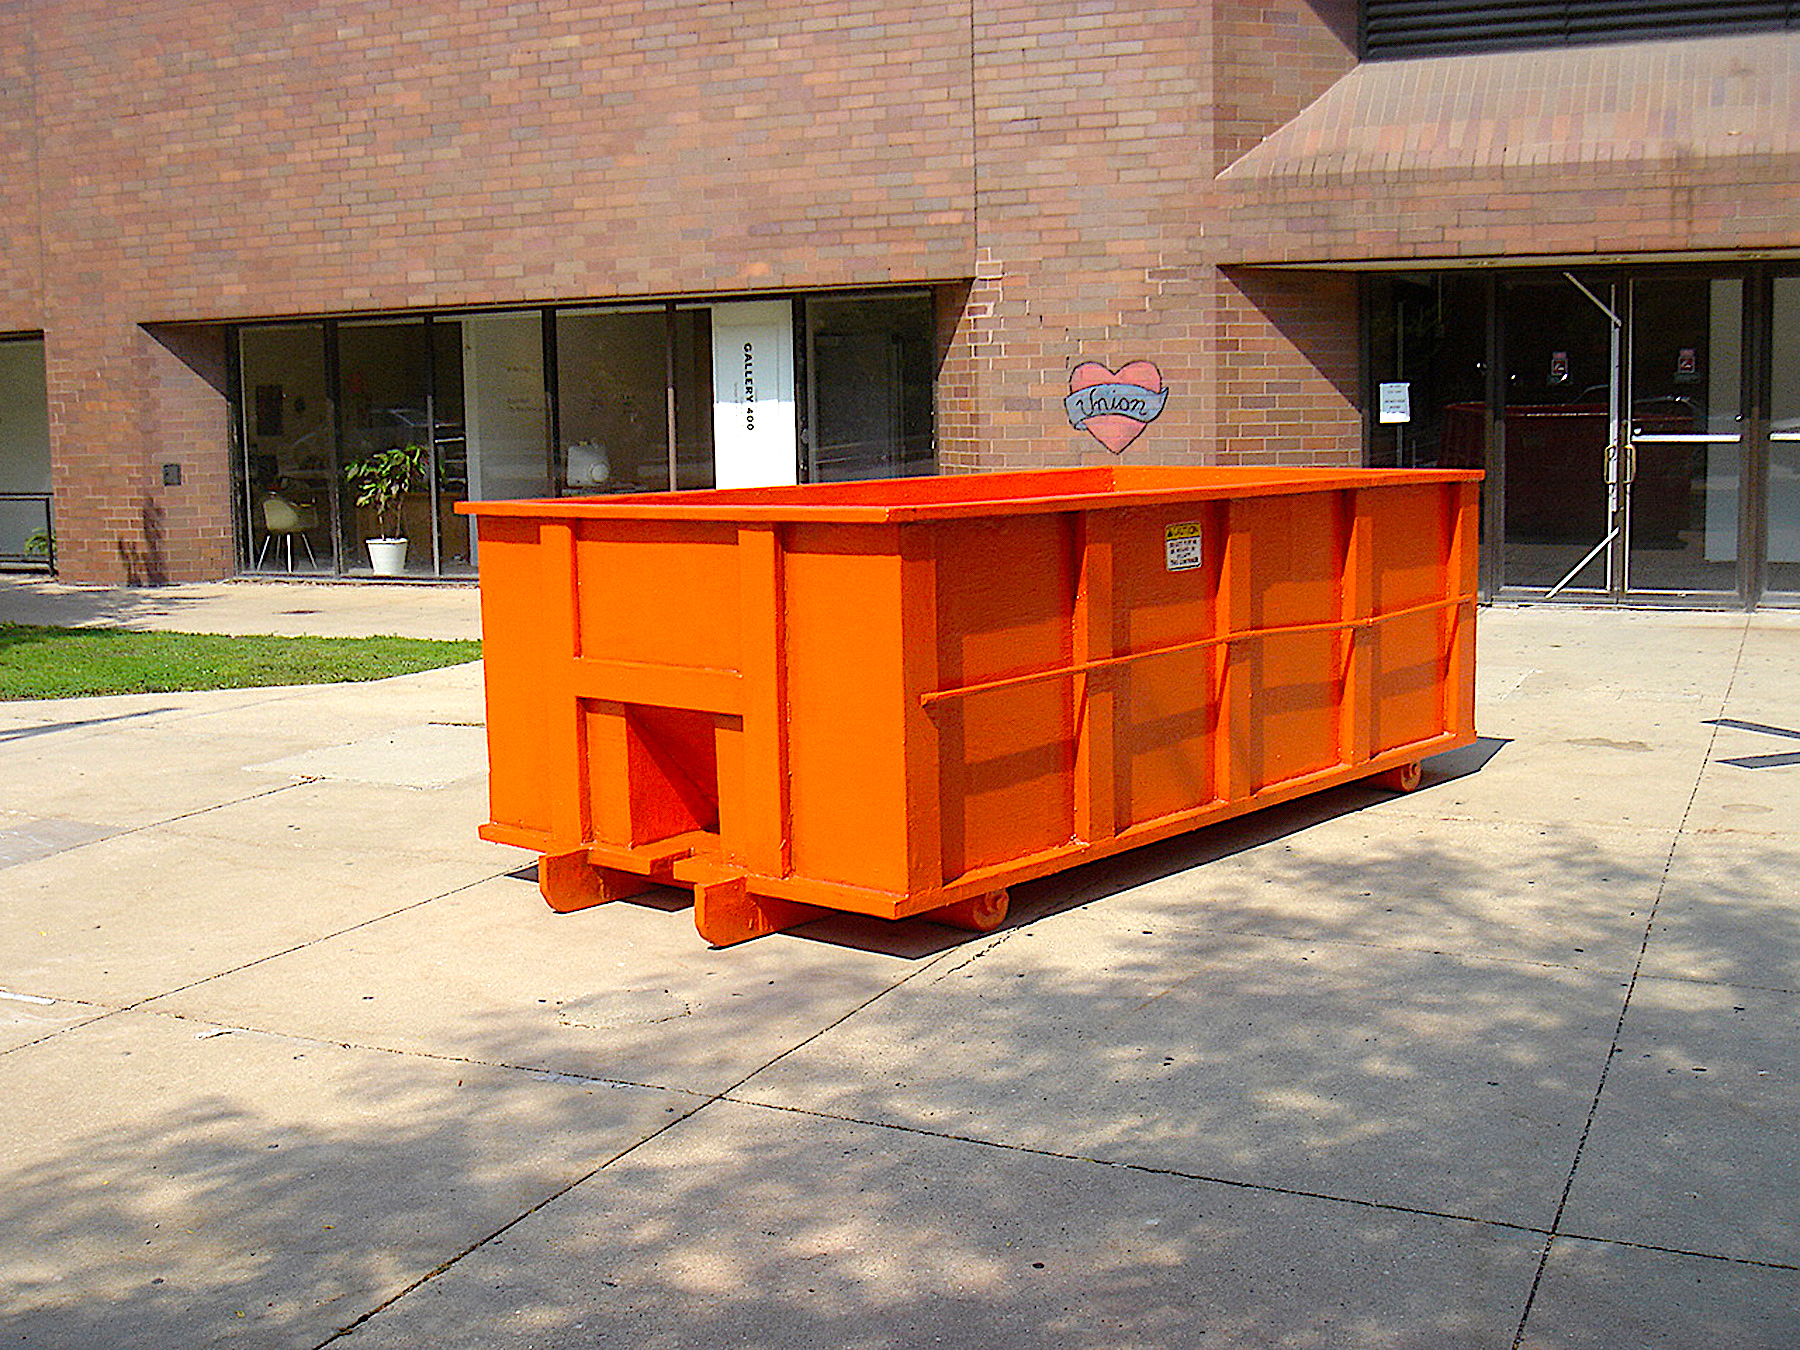 """Untitled Project: Dumpster  Enamel Paint on carved wood, 1:1 scale 2005   A carved and painted dumpster placed on the plaza in front of Gallery 400 at the University of Illinois at Chicago from September 2005 to February 2006. The dumpster sculpture functioned in many ways like a real dumpster in that it was both a visual symbol for construction/renovation/change and a platform for participation. During its brief stay, it collected trash, became a sifting site for recyclables, a support for student artworks and interventions, and a surface for graffiti–which in turn was painted over by the city of Chicago's graffiti removal program. In the end the dumpster was emptied and delivered to Dan Peterman's experimental station, which was then under (re)construction and needed a """"dumpster"""" to comply with city code."""